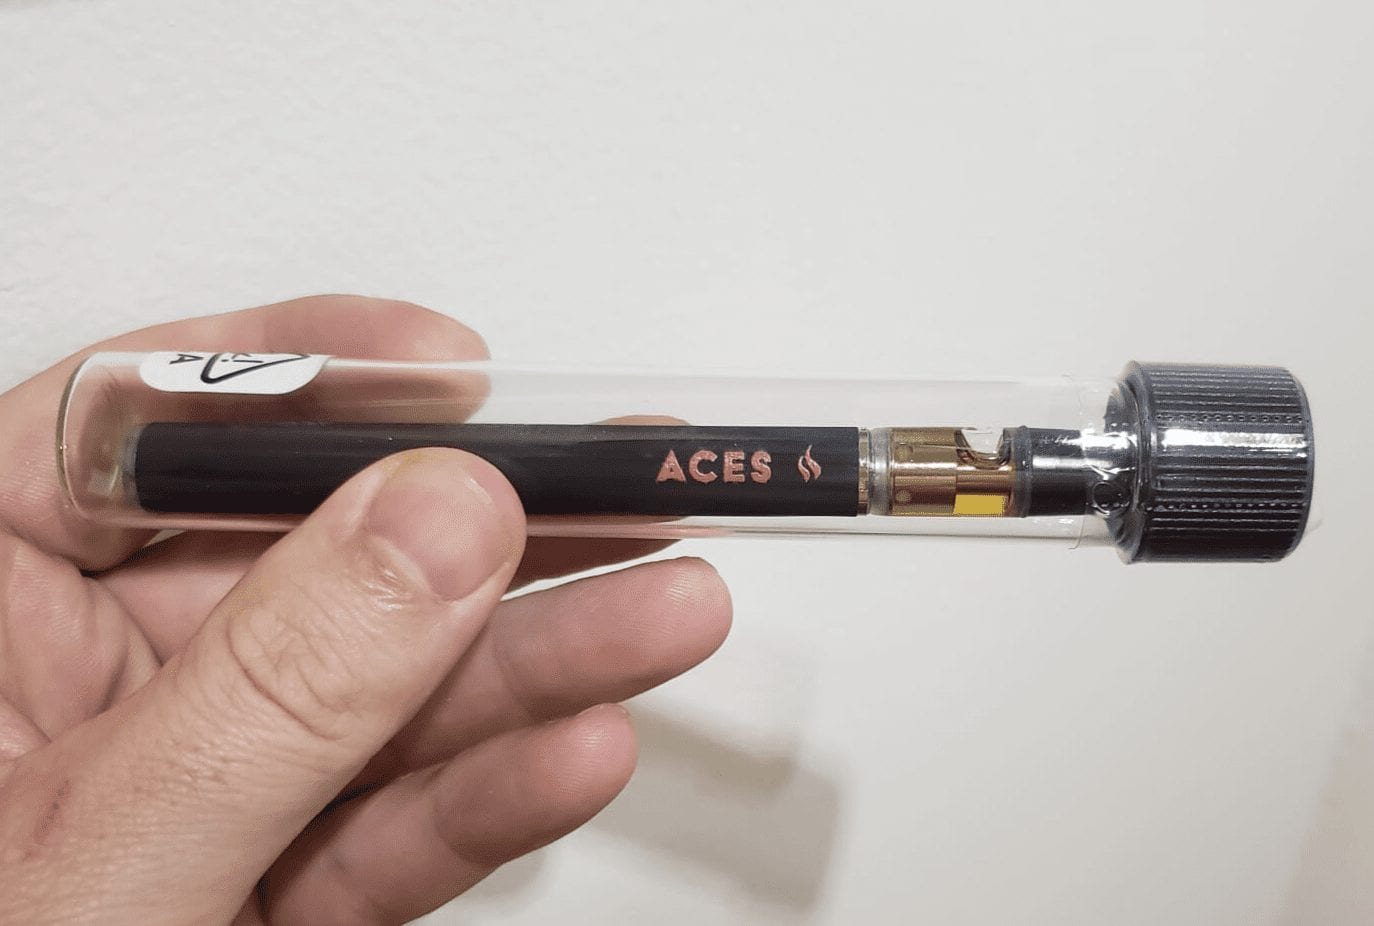 Aces Extracts cartridge